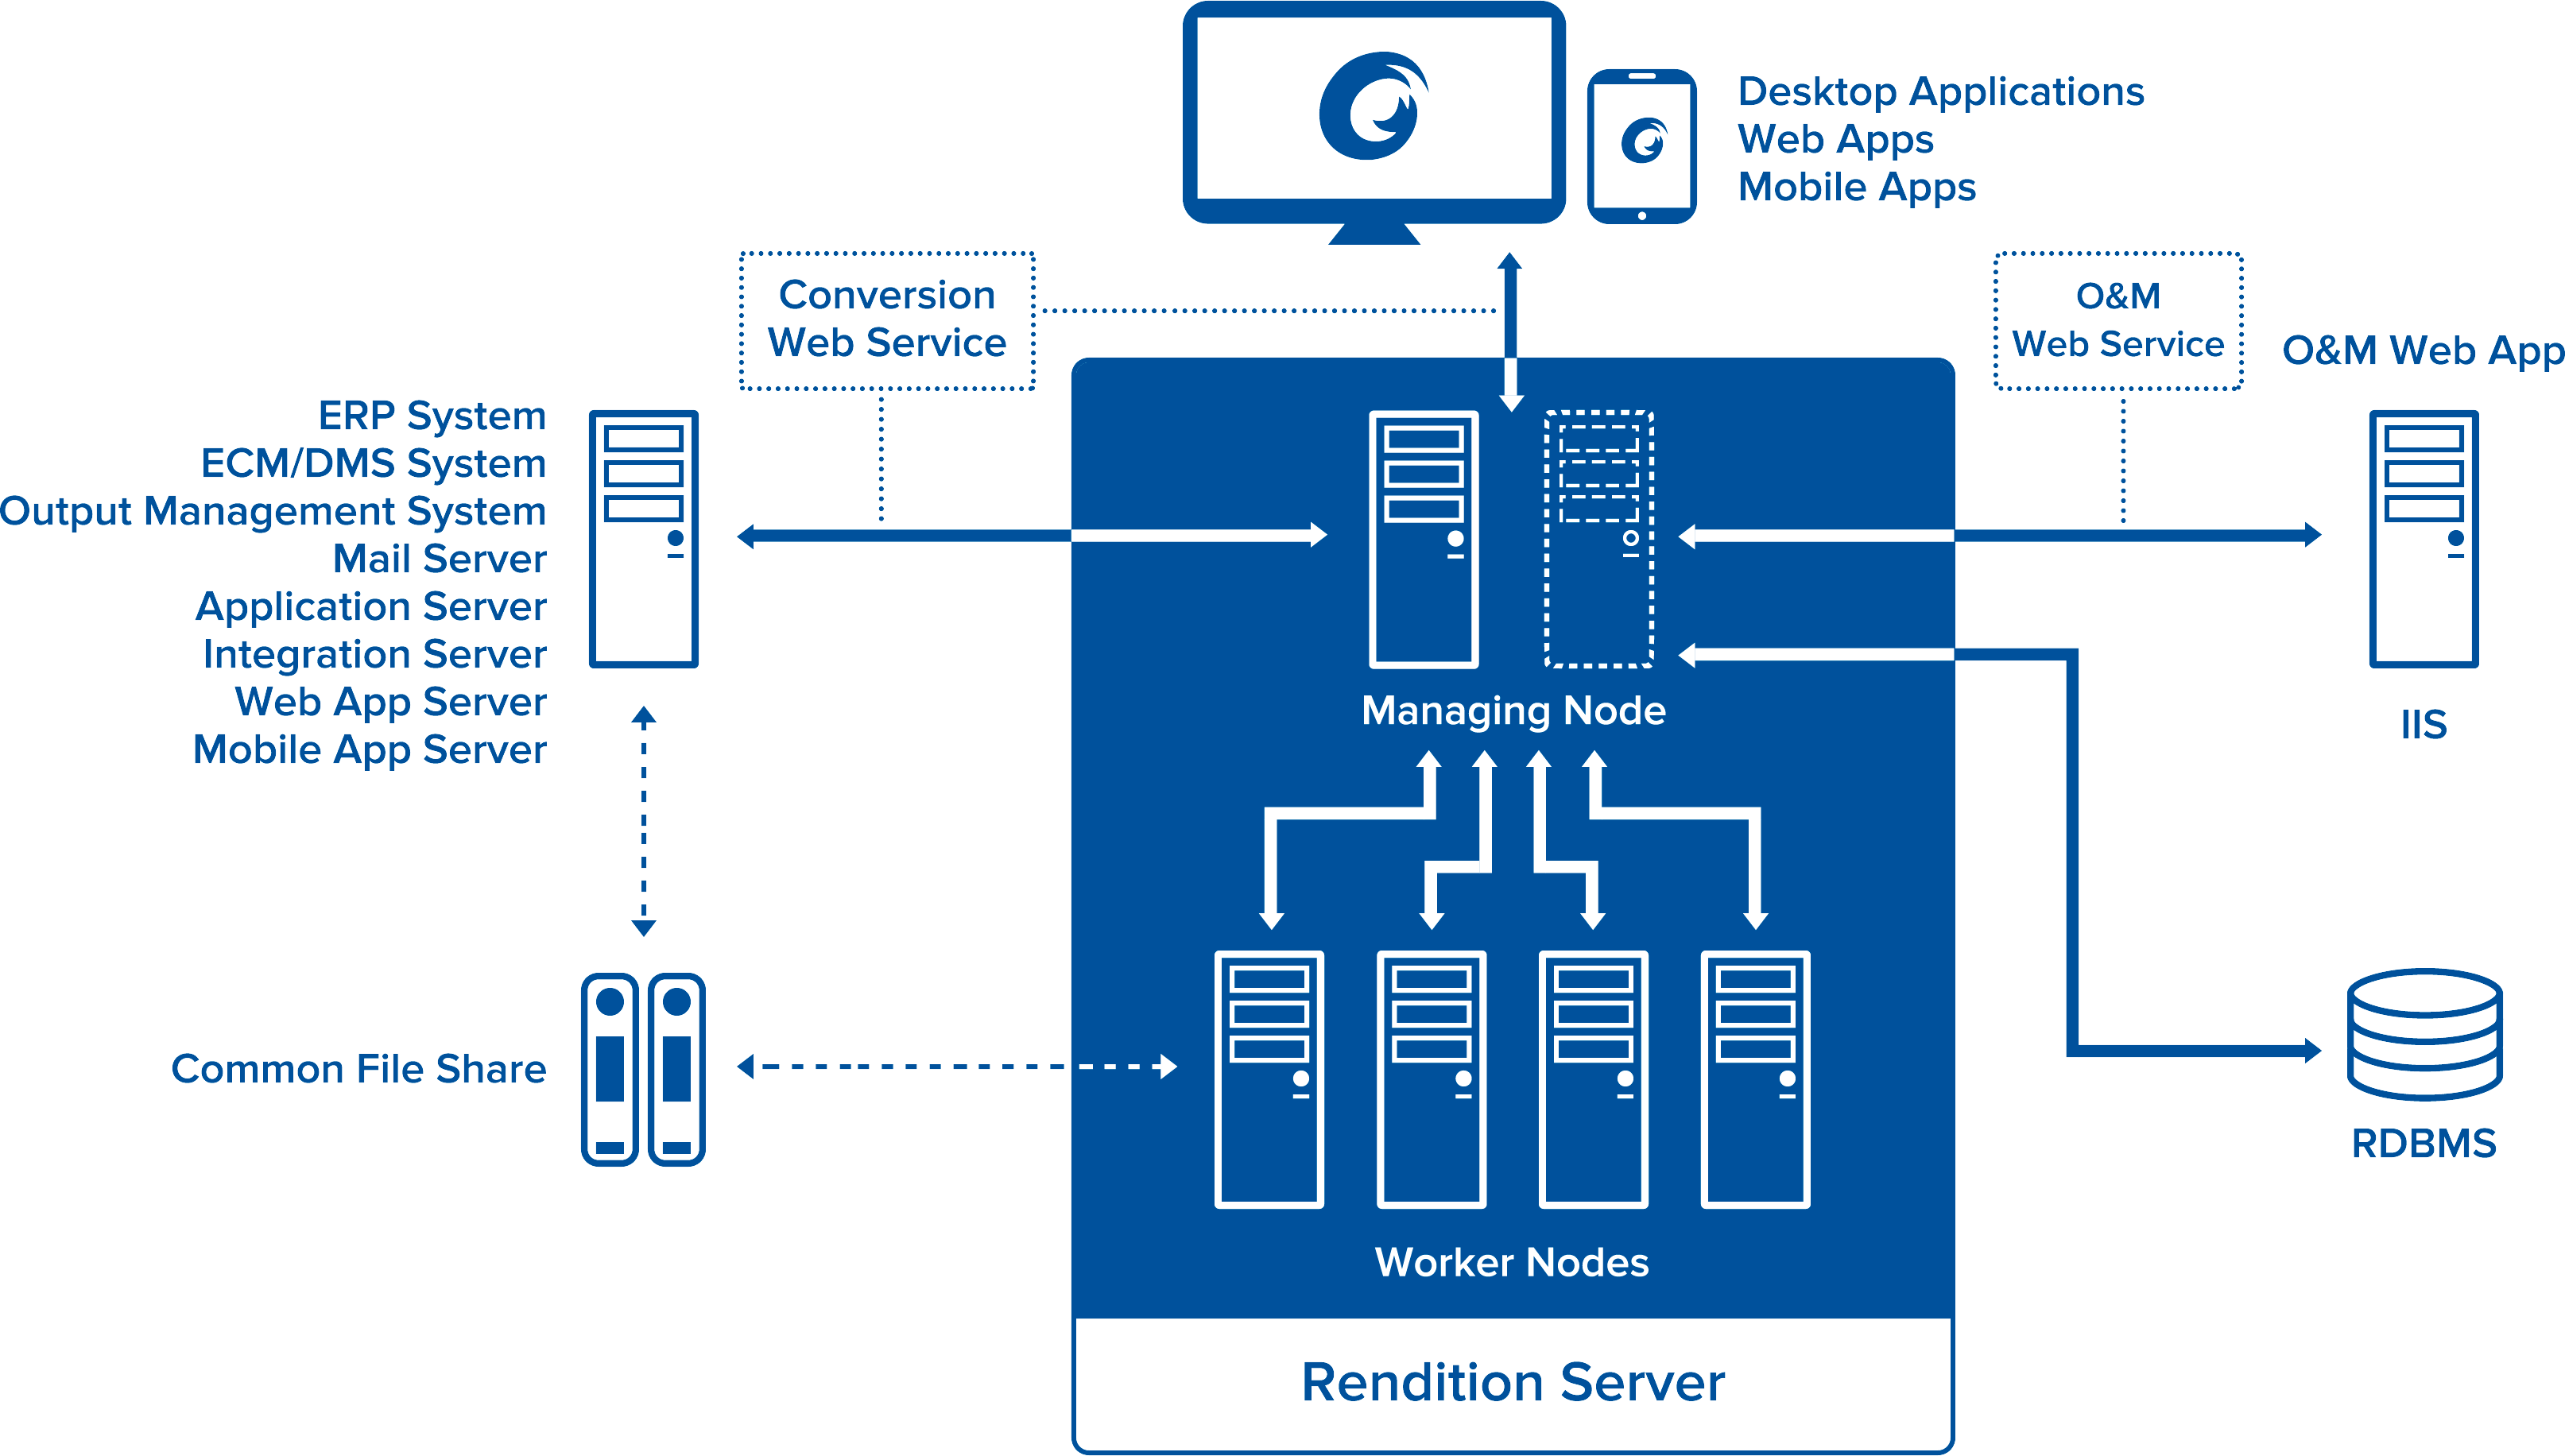 Rendition Server Technical Architecture